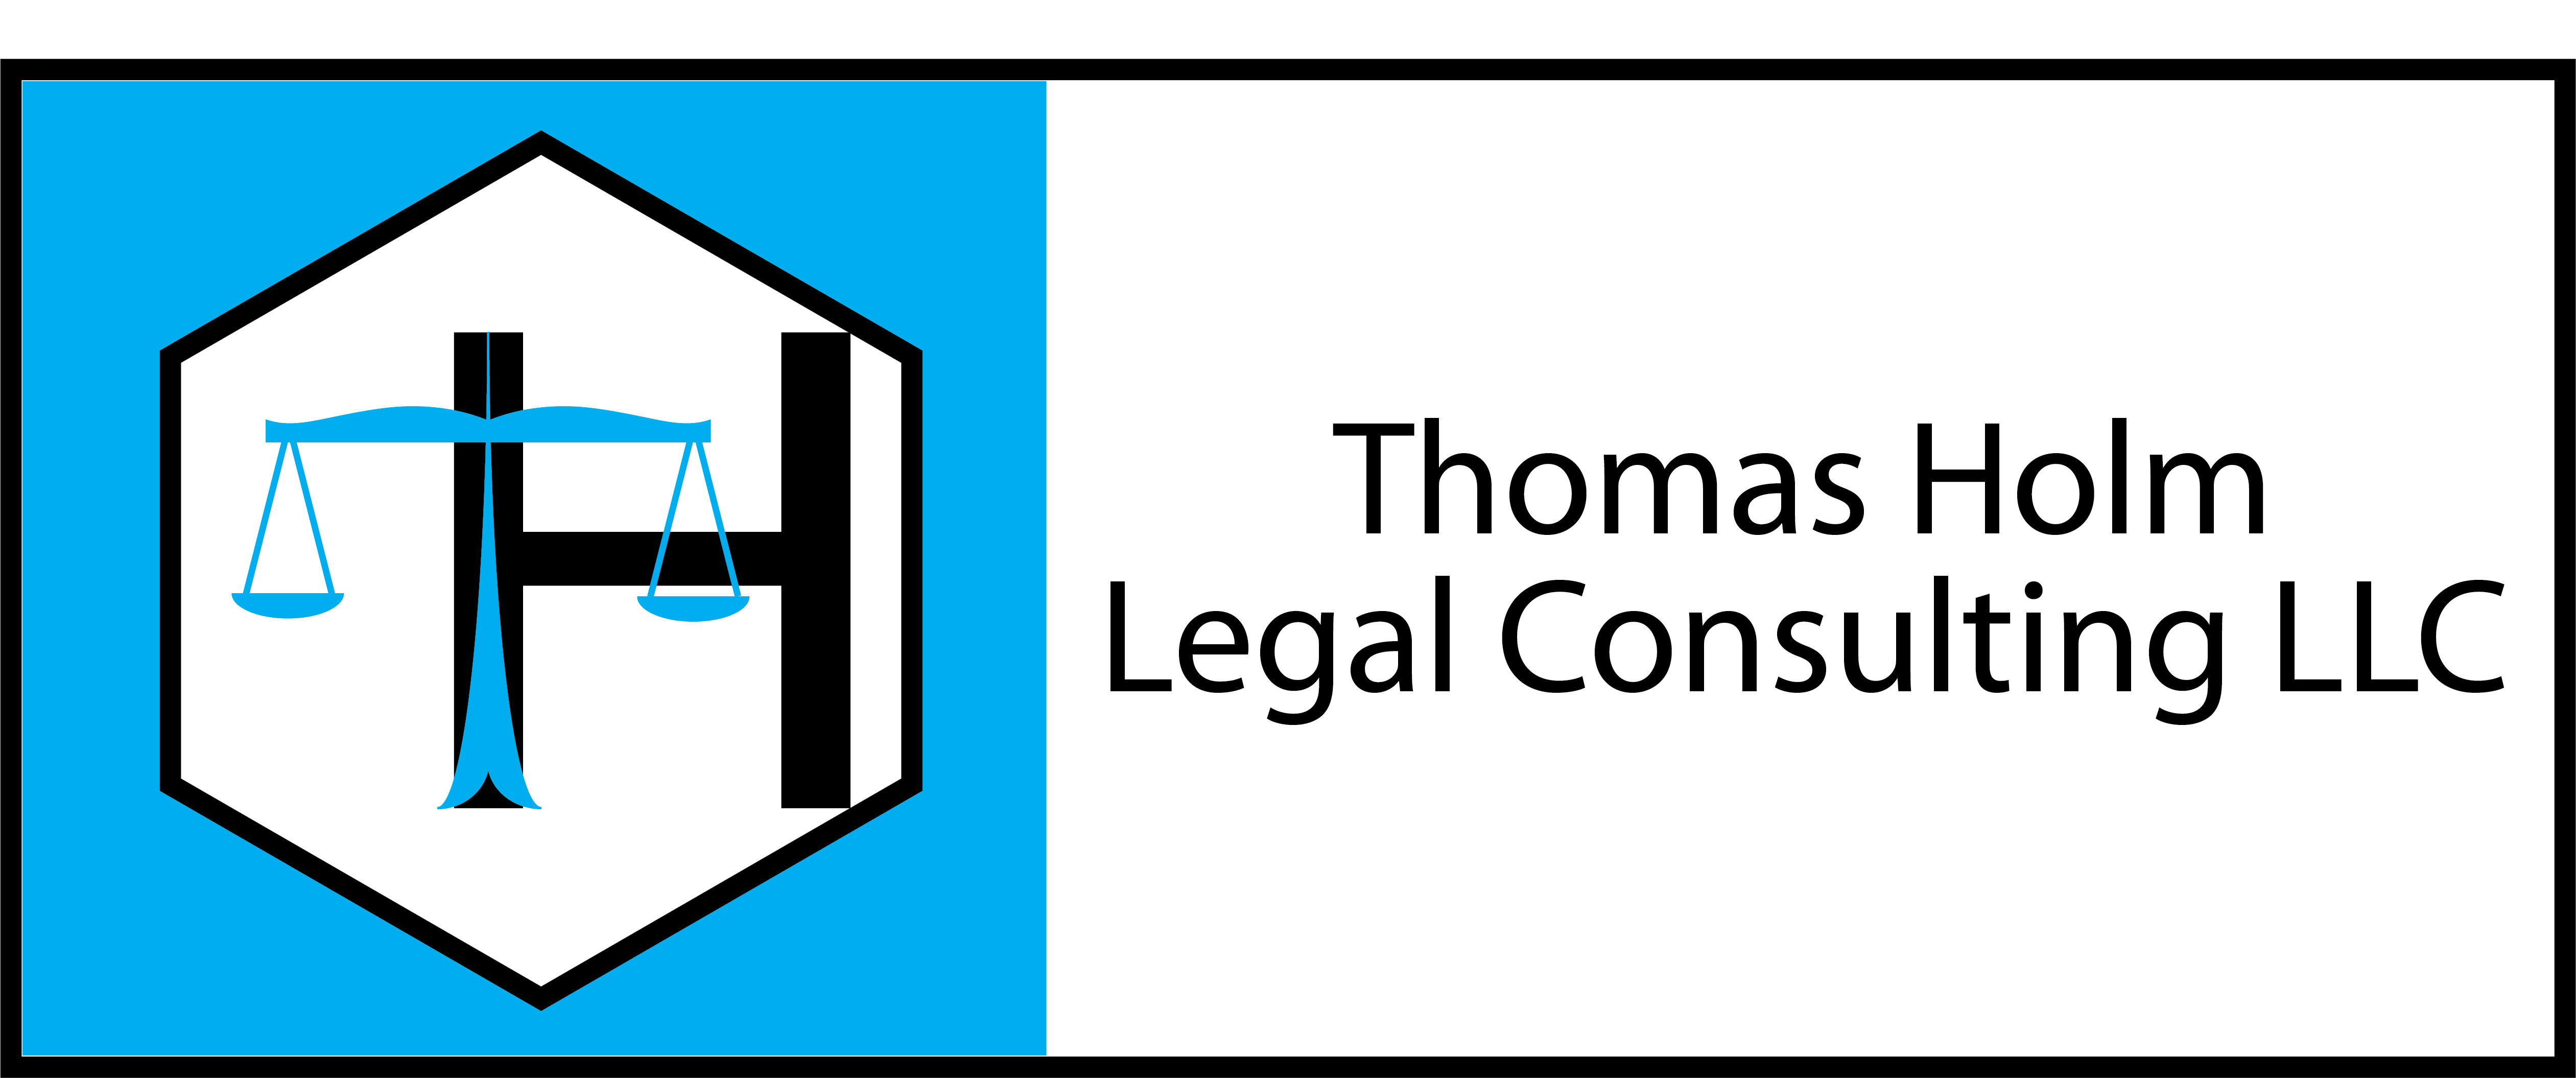 Thomas Holm Legal Consulting LLC